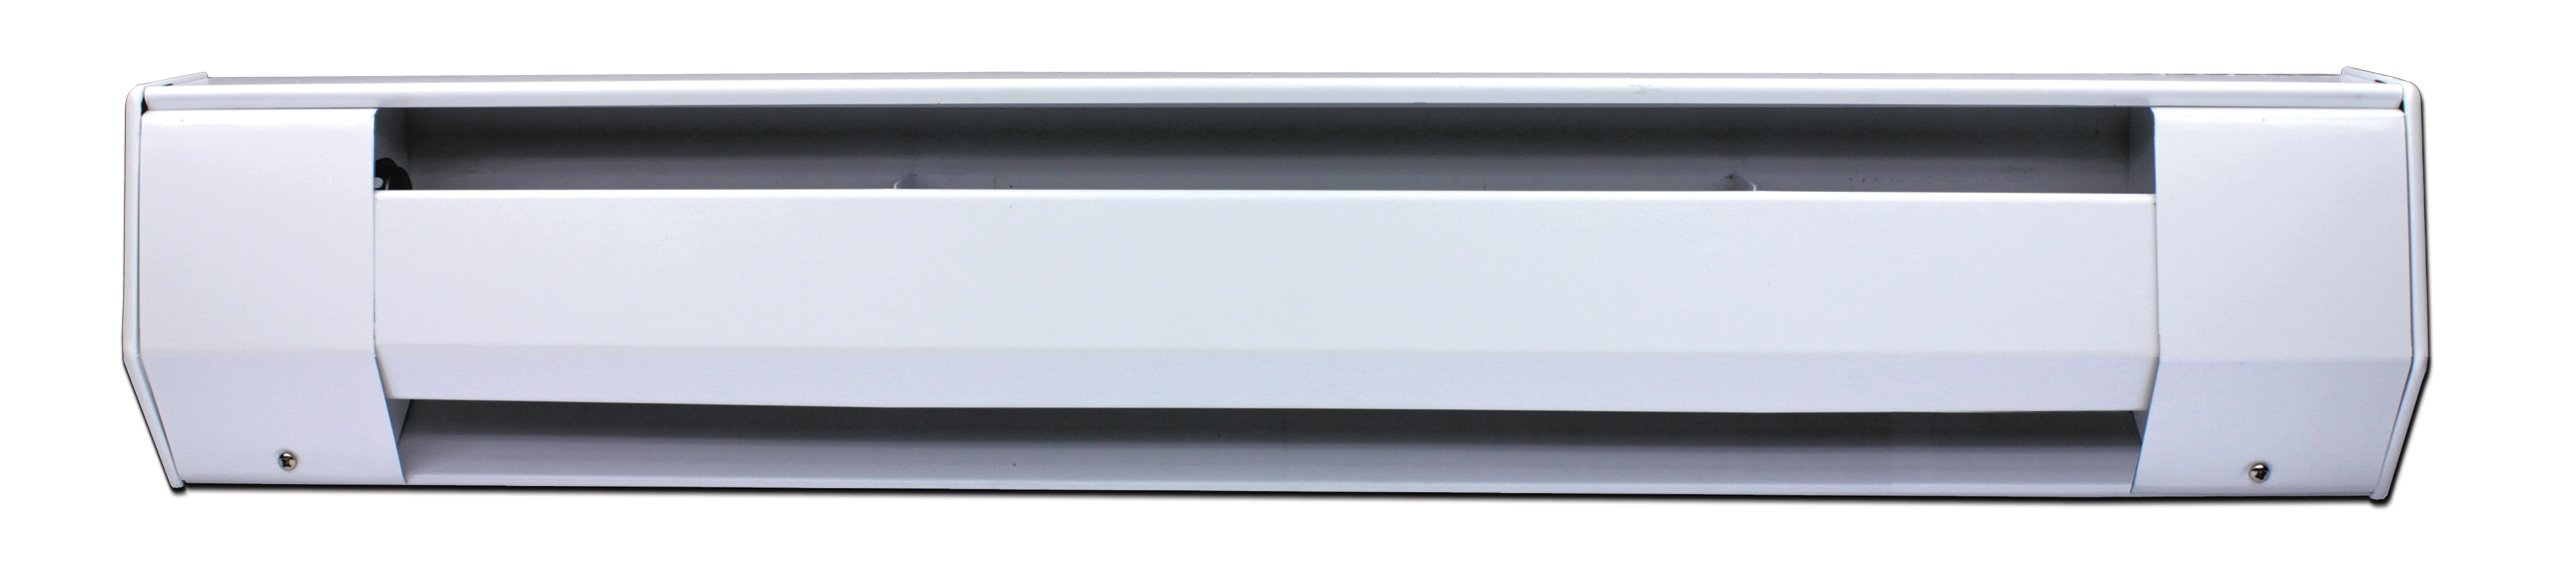 King 8K2420BW 2,000-1,500-Watt 240/208-Volt 8-Foot Baseboard Heater, Bright White